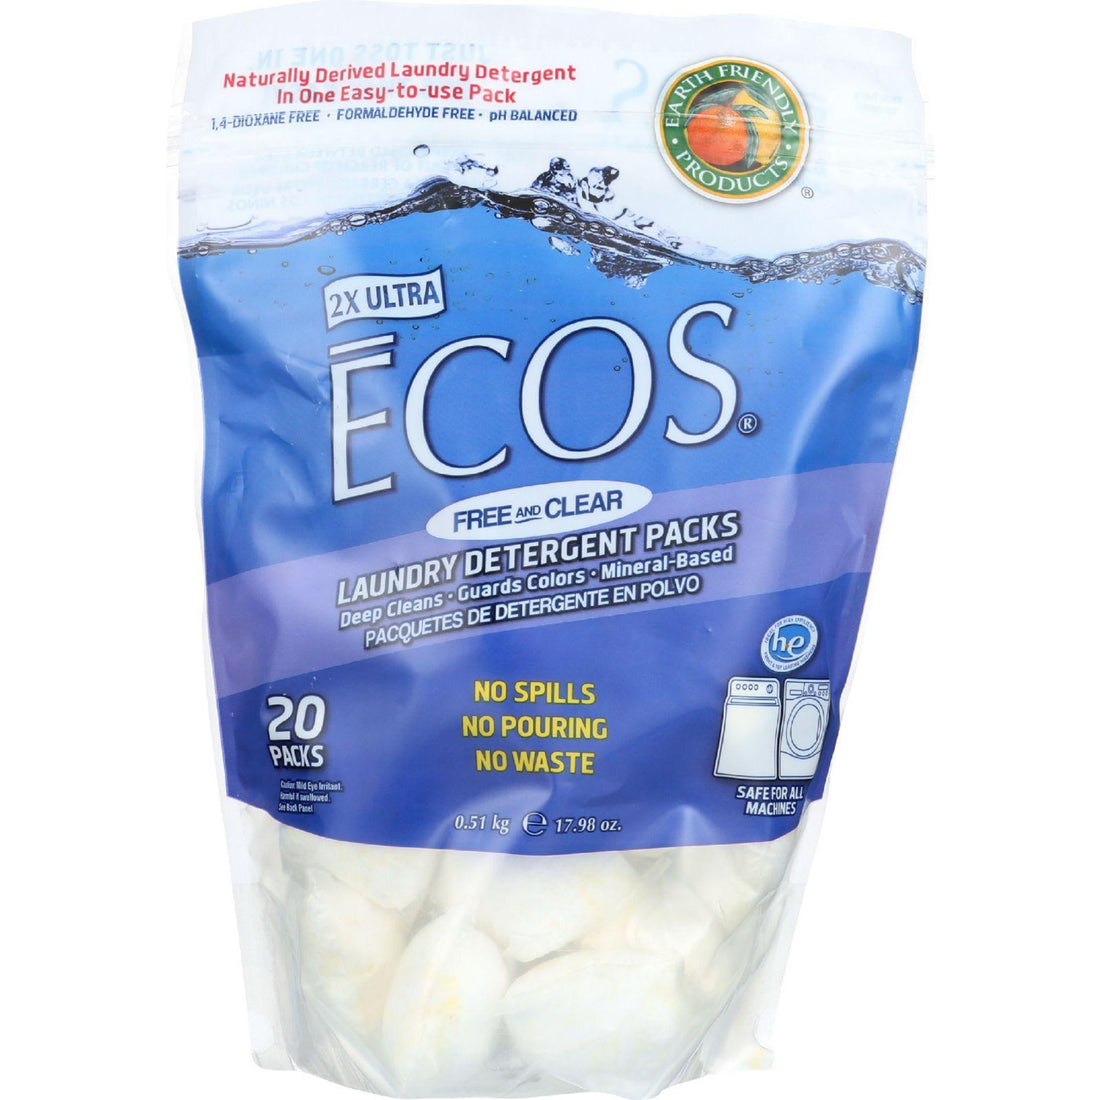 Mother Mantis: Earth Friendly Laundry Detergent Packs - Ultra Liq Ecos - 20 Pods - Free And Clear - 17.98 Oz - Case Of 6 Earth Friendly